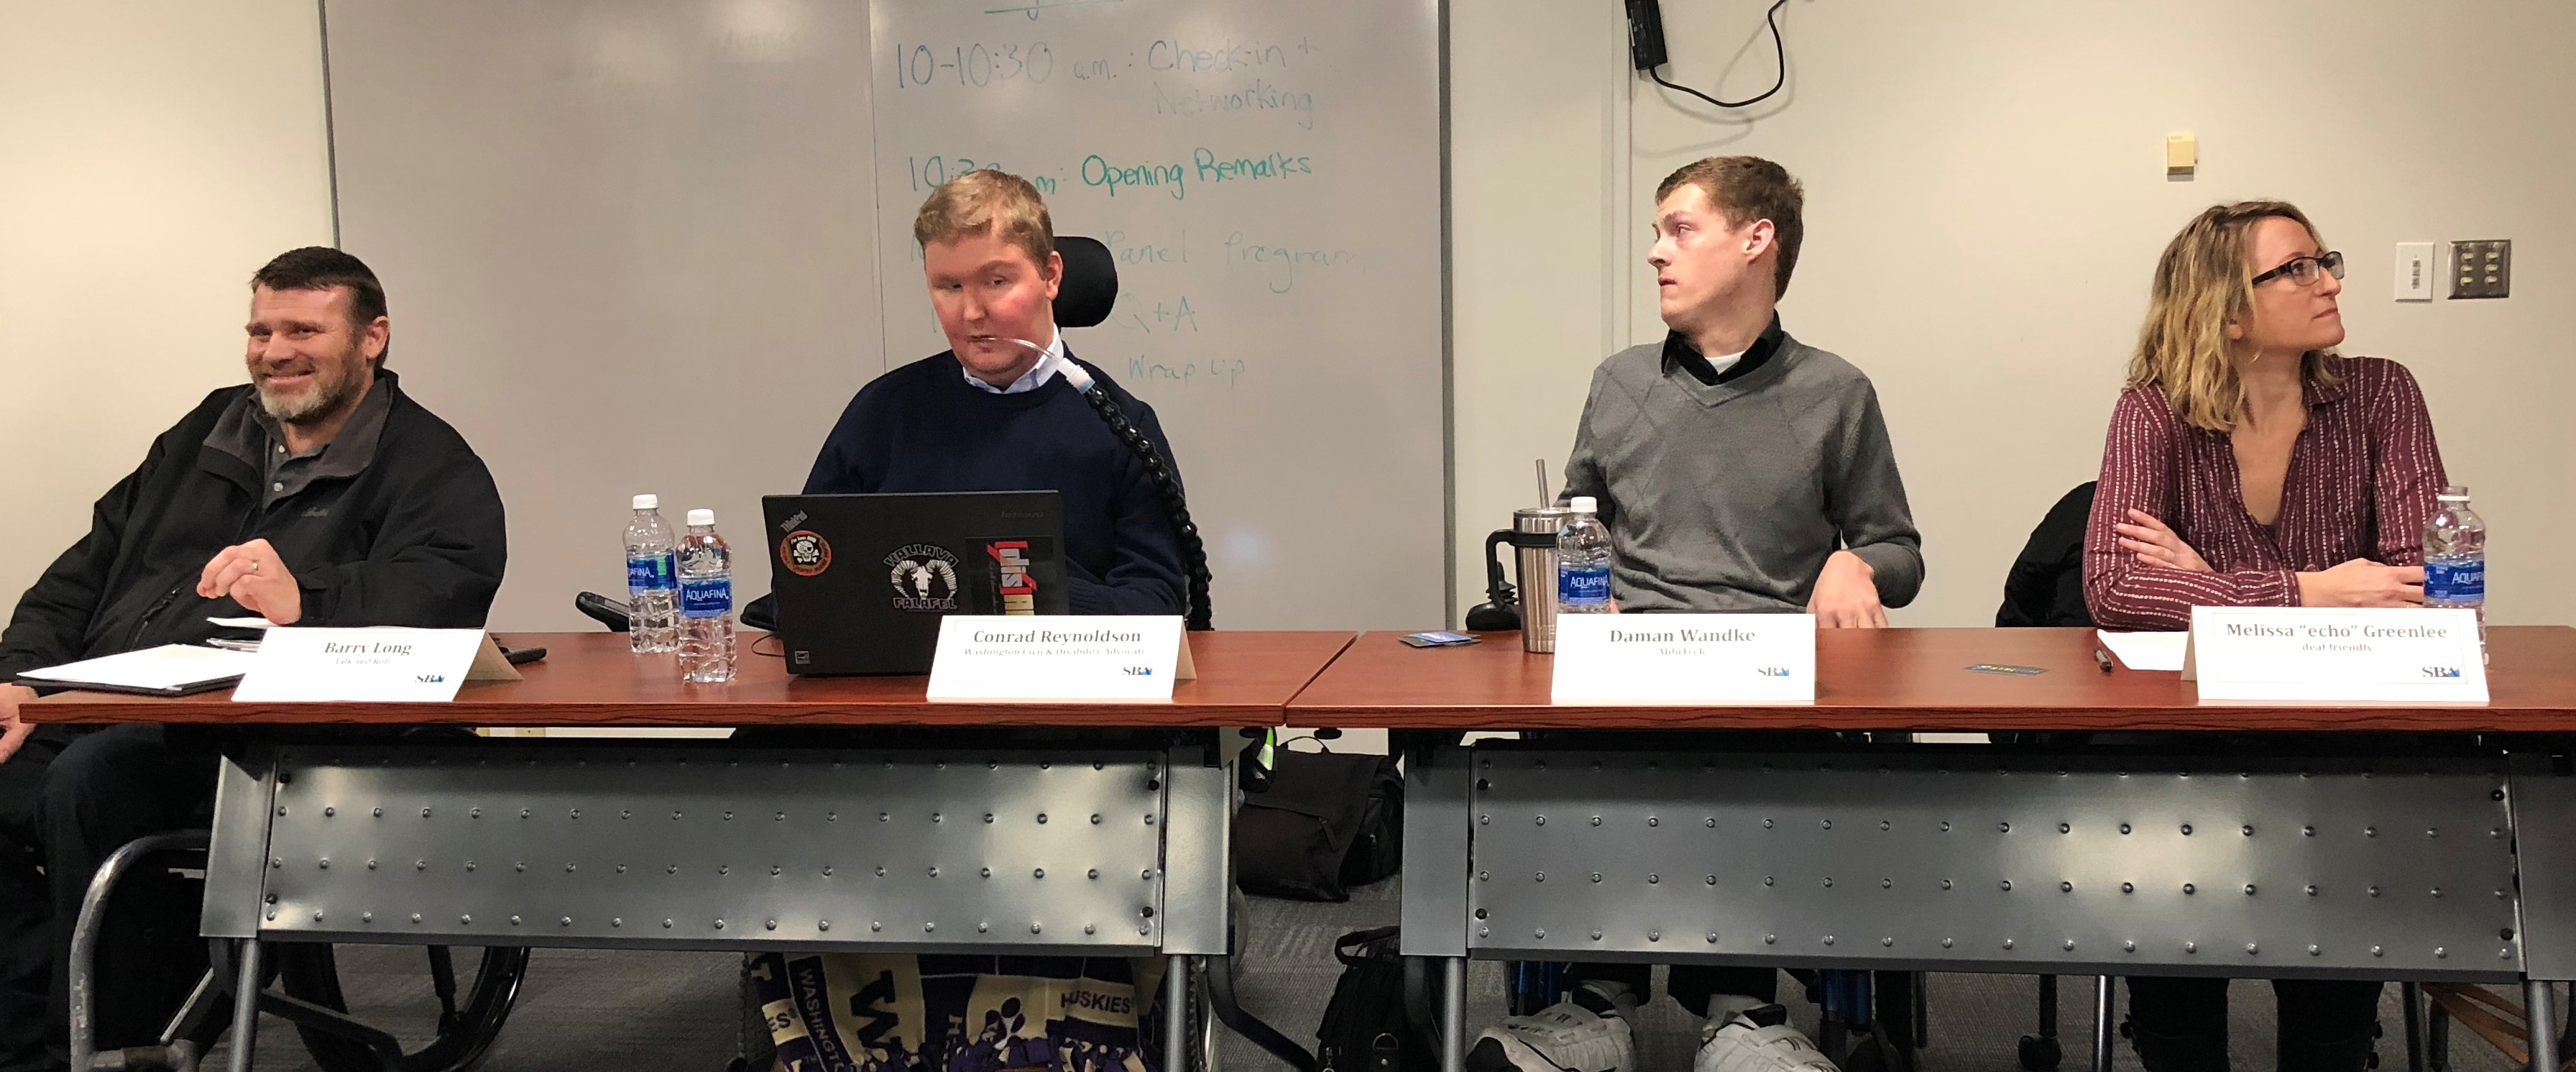 Daman sitting on a disability lead panel. He is the third from the left. Daman is wearing a grey sweater with a black collar. Barry, the first man on the left, is wearing a black, zip-up jacket, and is speaking. Conrad is second from the left; he is wearing a dark blue sweater with a white collar and is looking at his laptop. Melissa is sitting the fourth from the left.